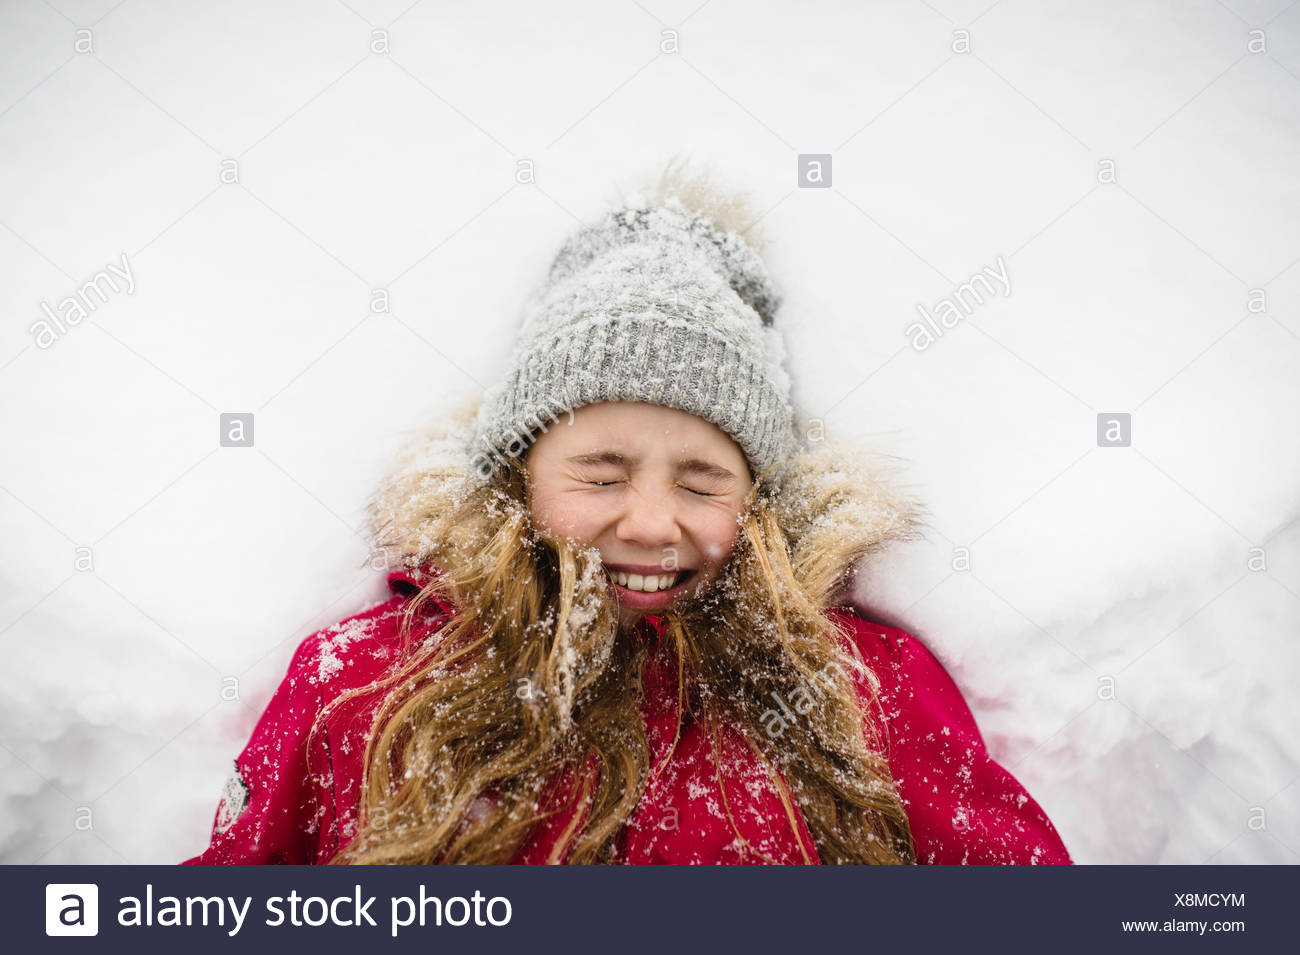 Girl lying on back in snow with eyes closed - Stock Image